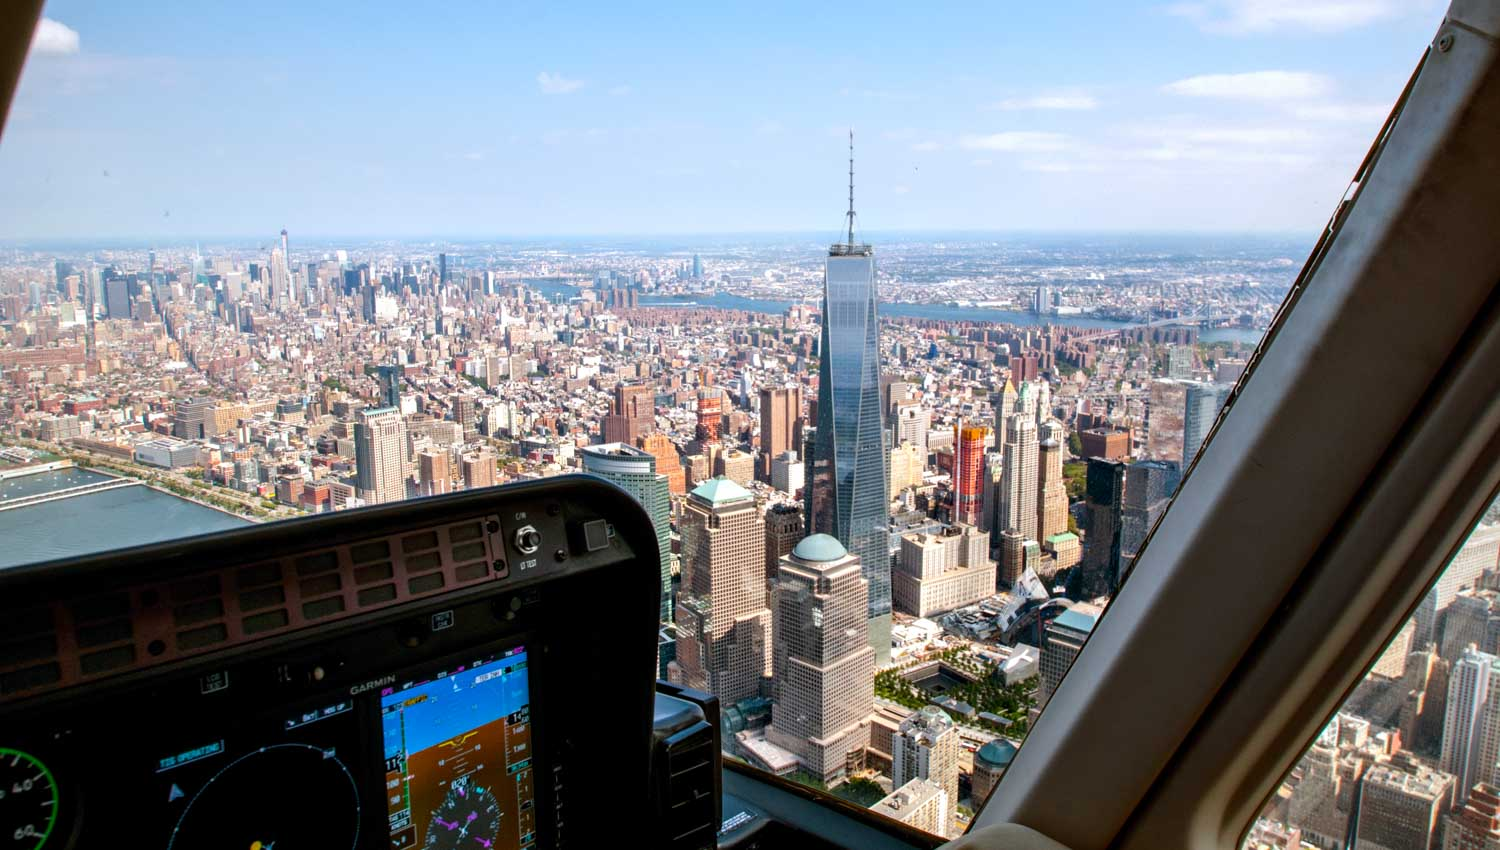 Elicottero A New York : New york voli in elicottero getyourguide